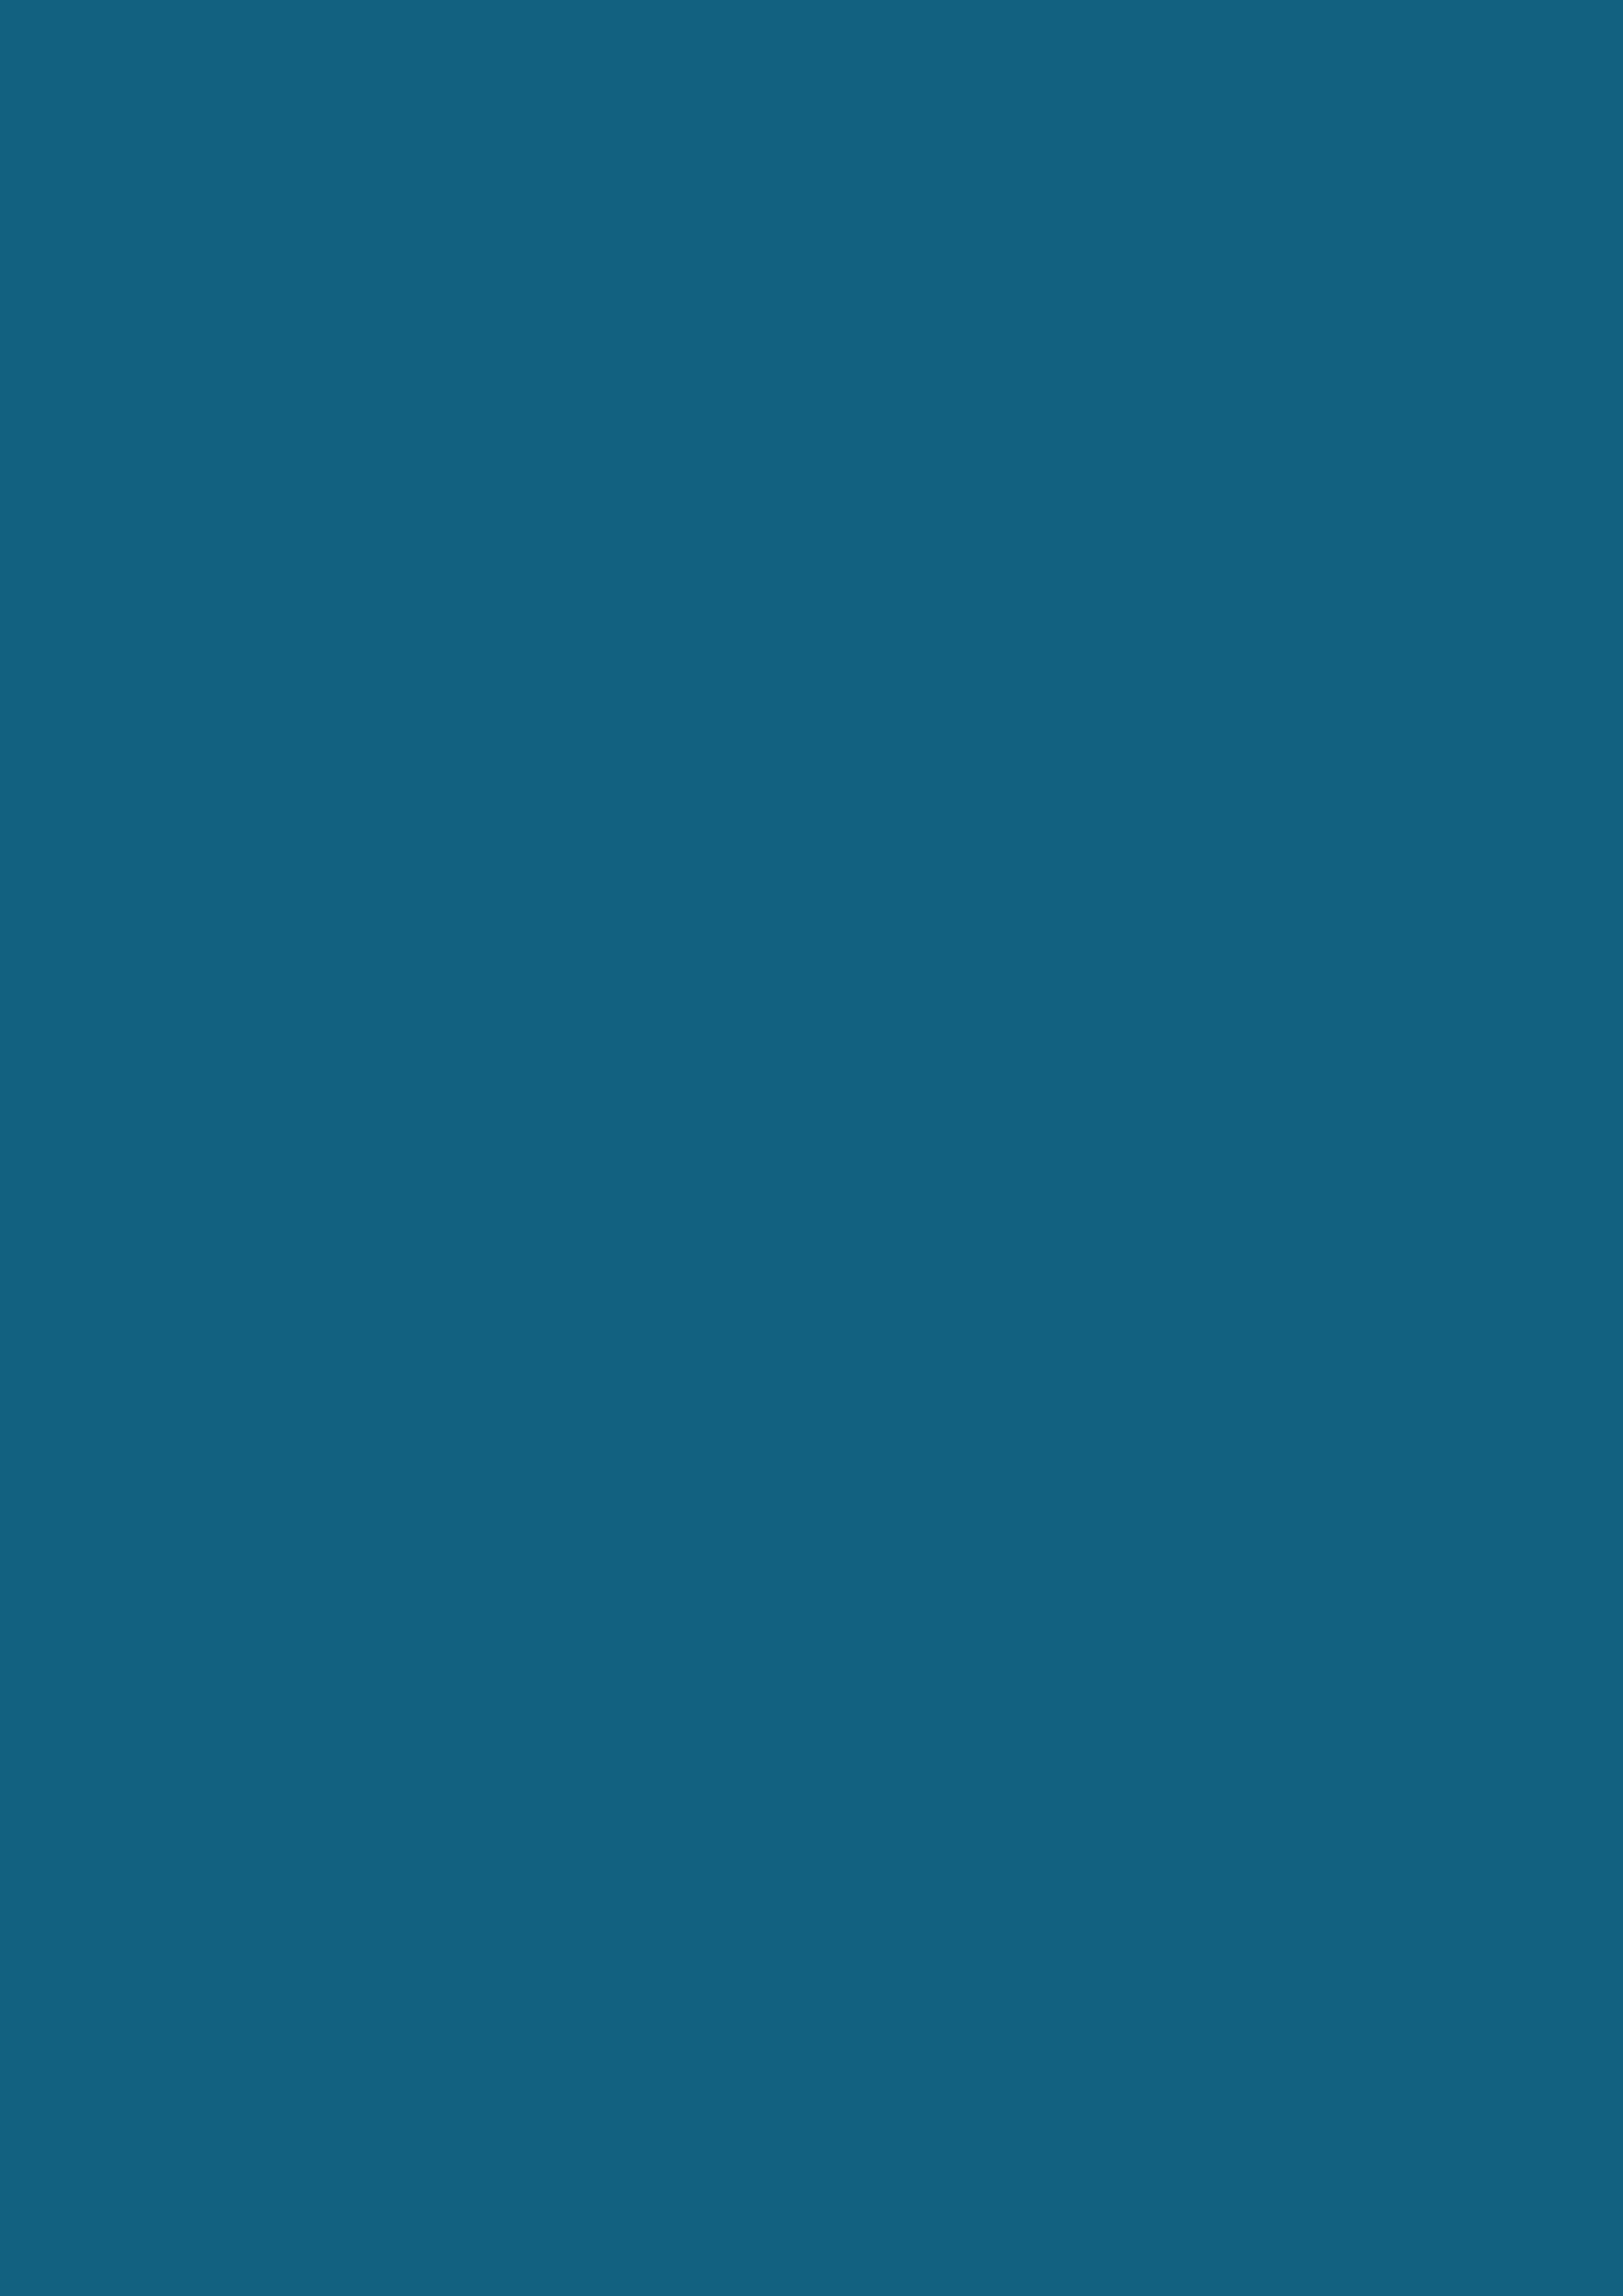 2480x3508 Blue Sapphire Solid Color Background